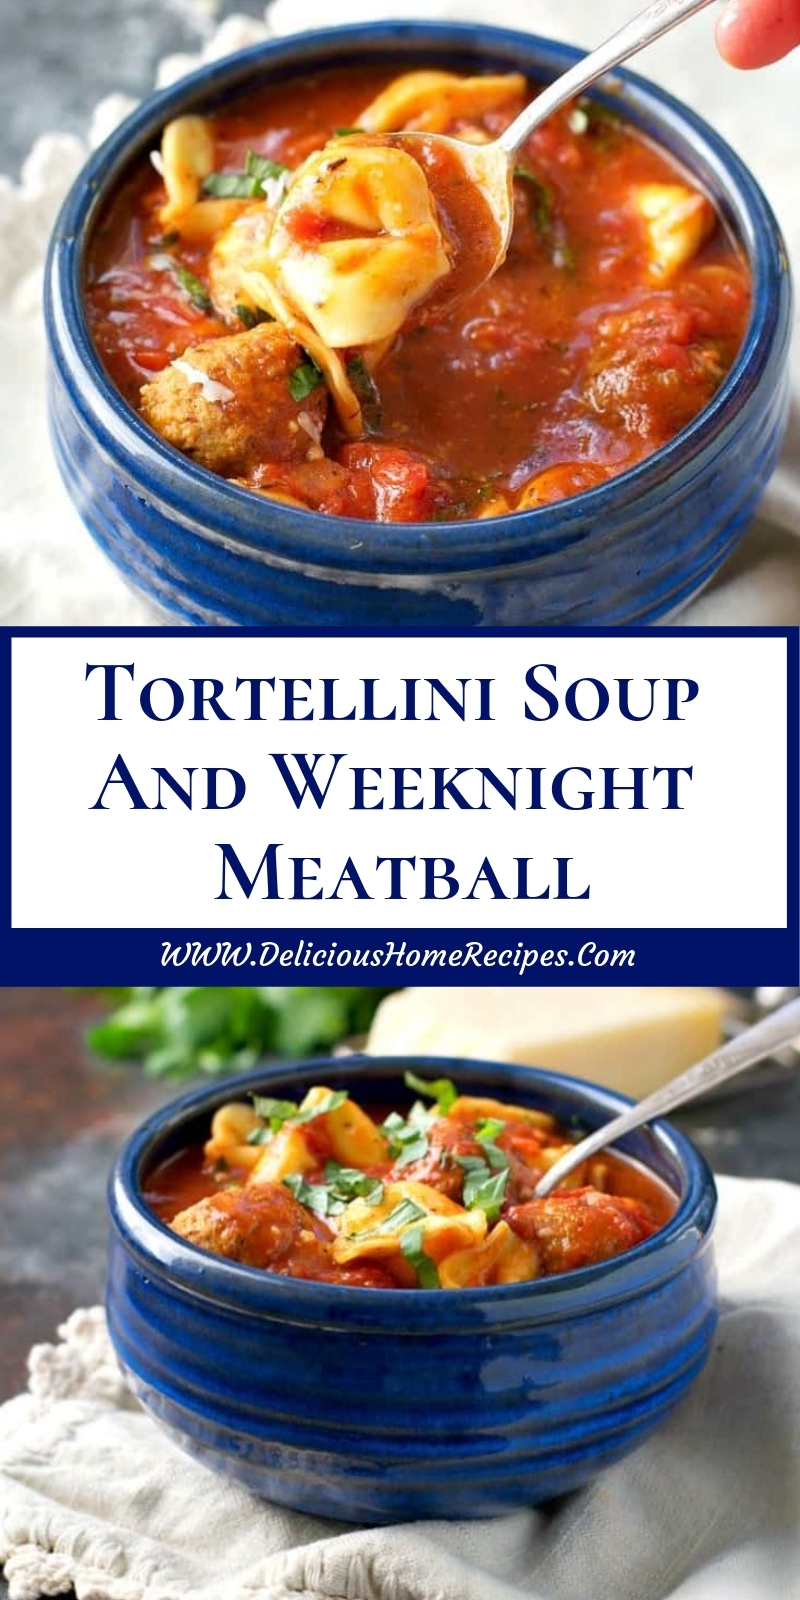 Tortellini Soup And Weeknight Meatball